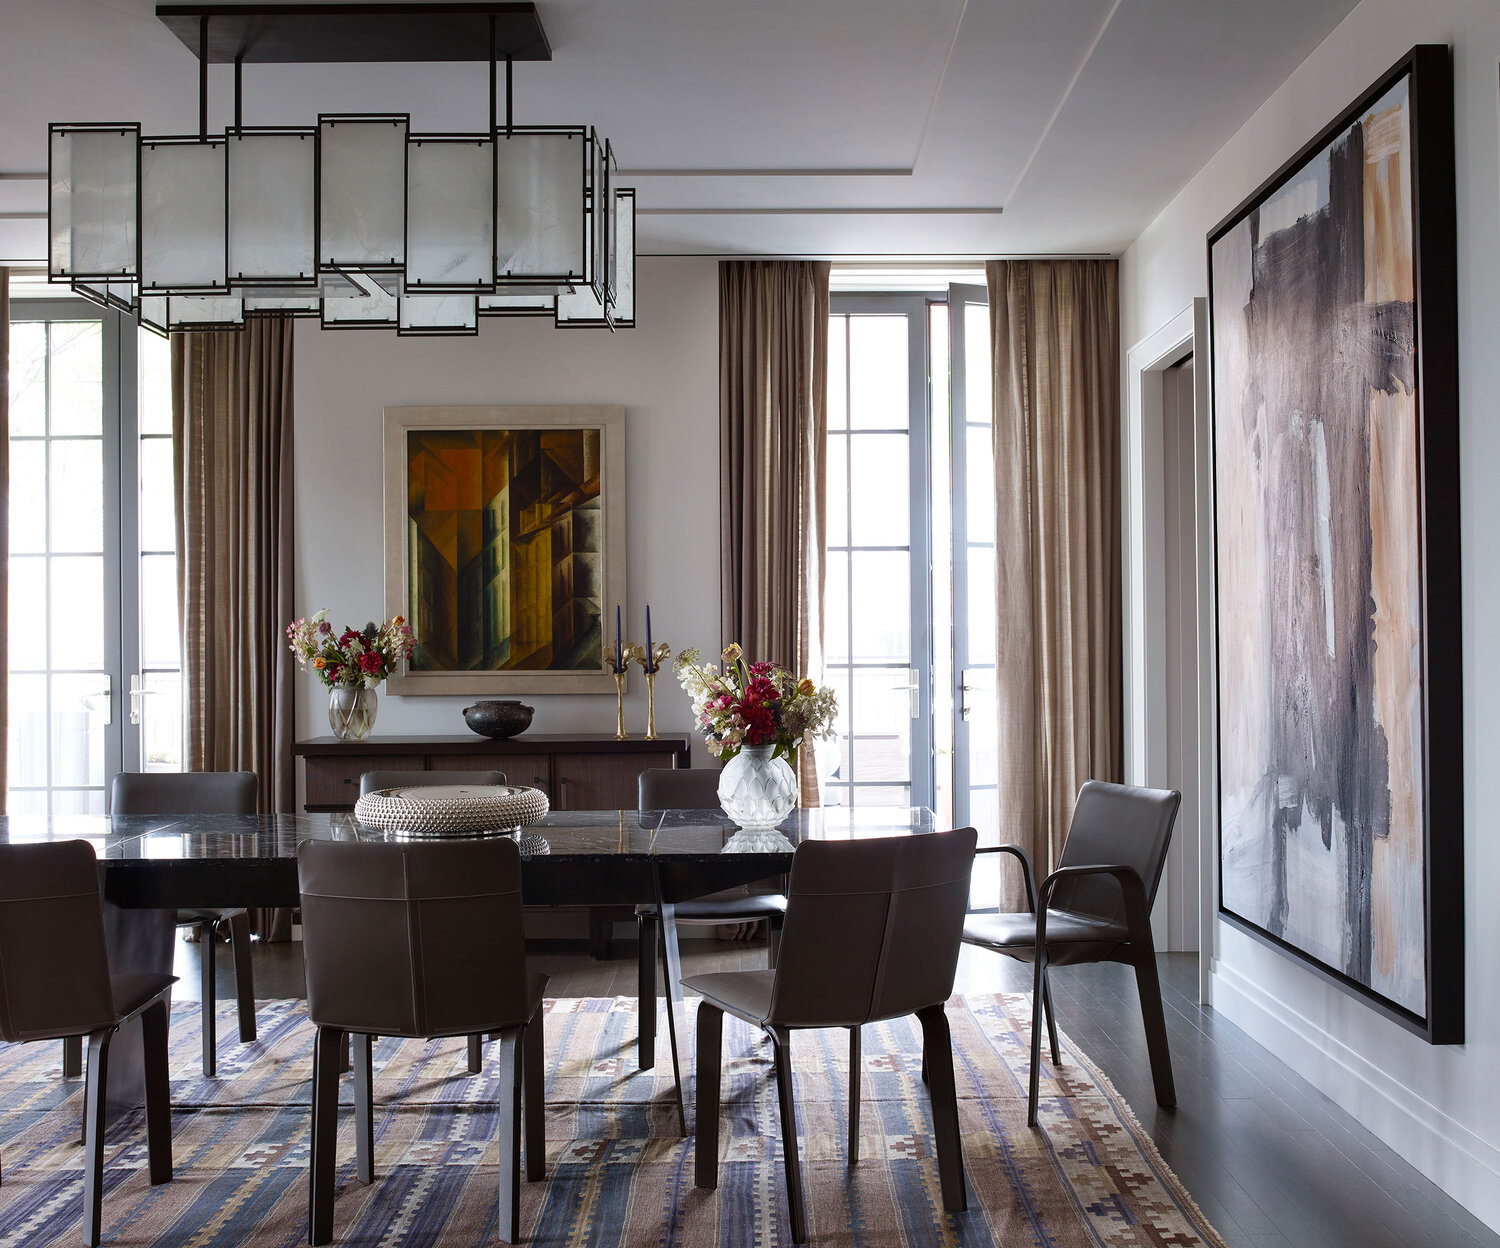 West Village Penthouse. Interior design by Wesley Moon